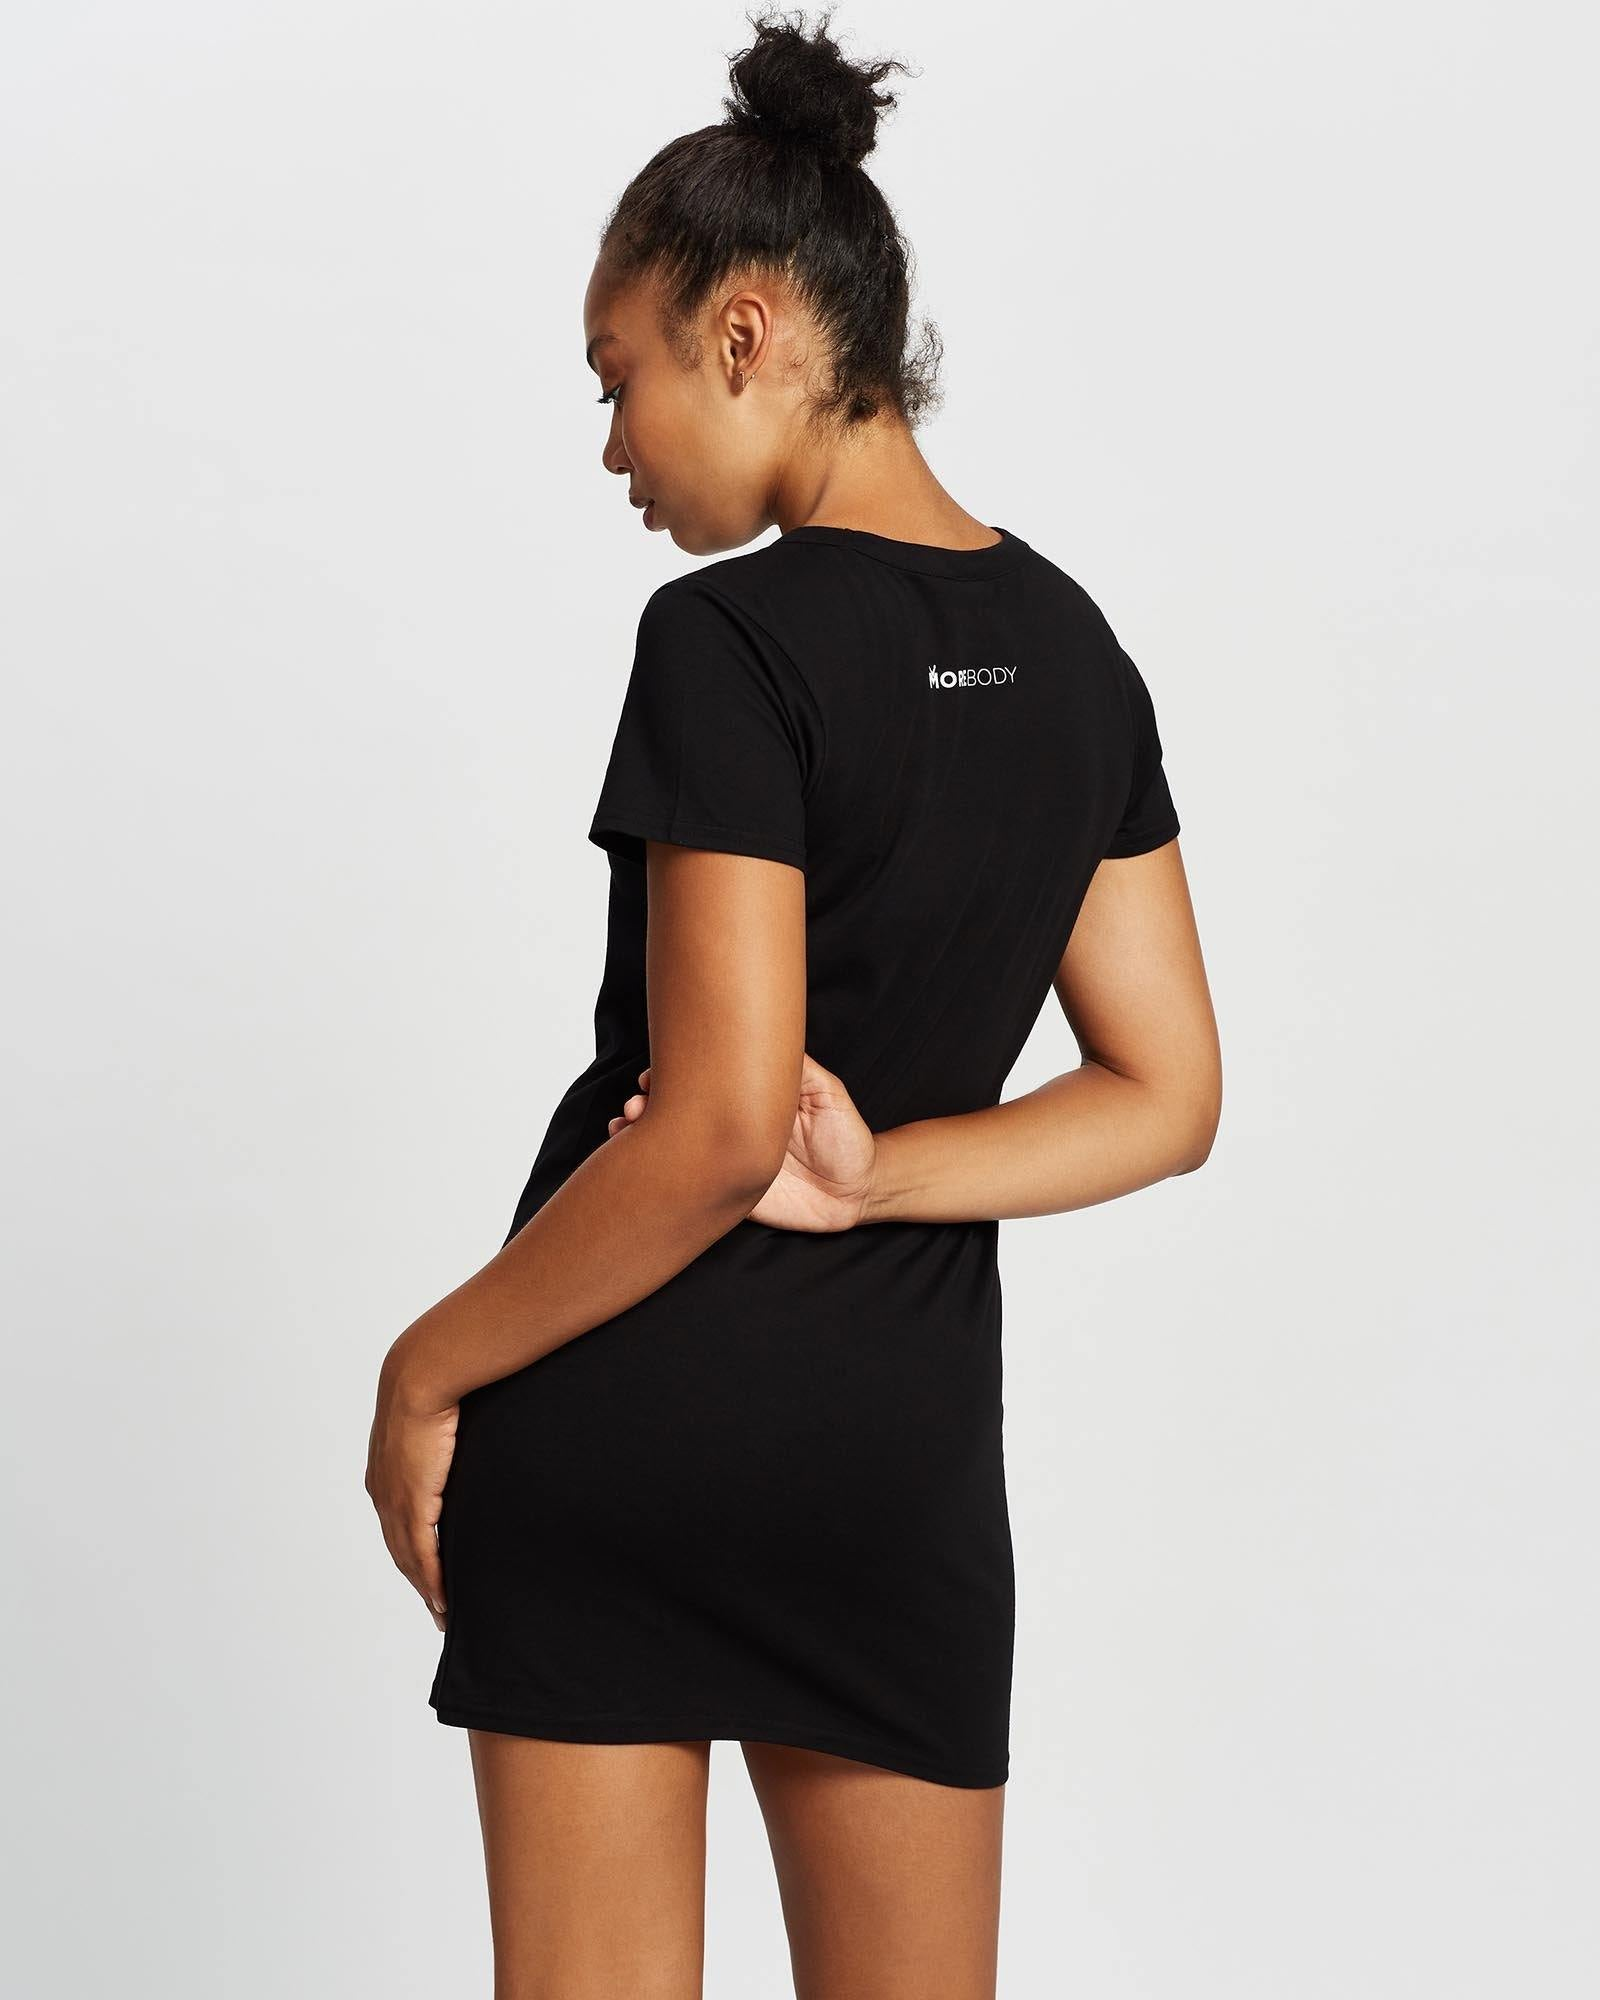 Companion Latissimus Black T-Shirt Dress - More Body